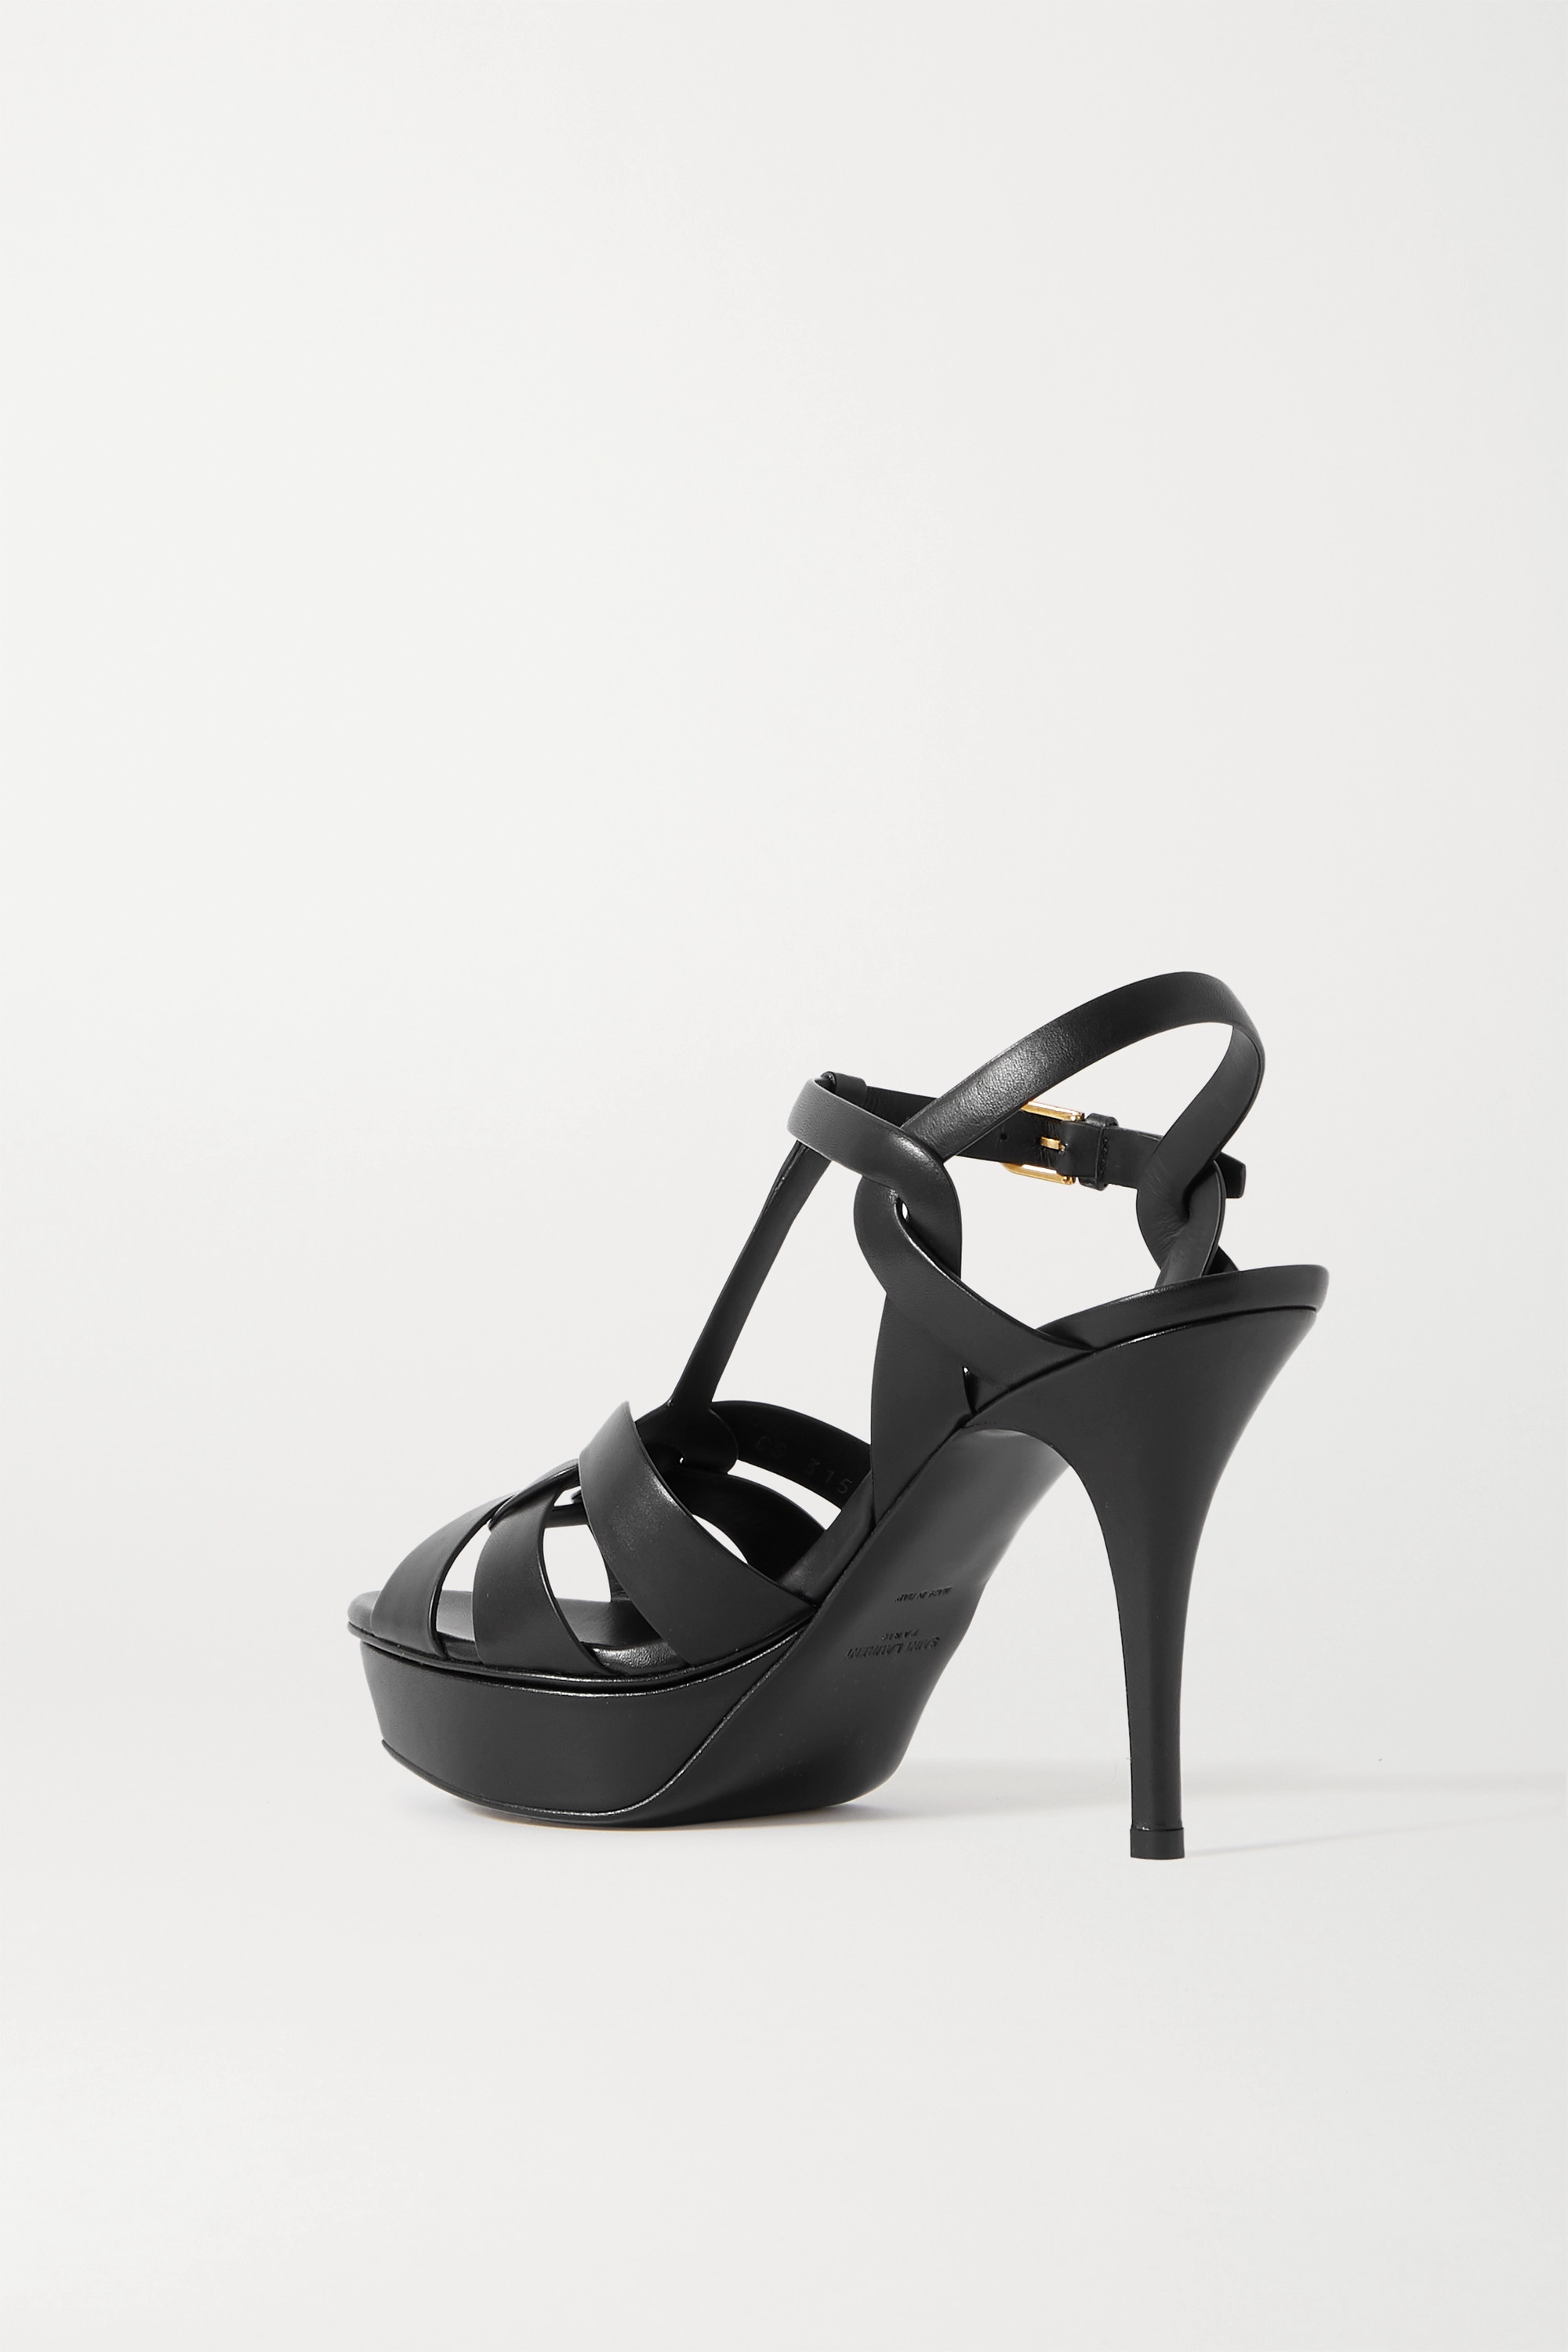 SAINT LAURENT Tribute woven leather platform sandals